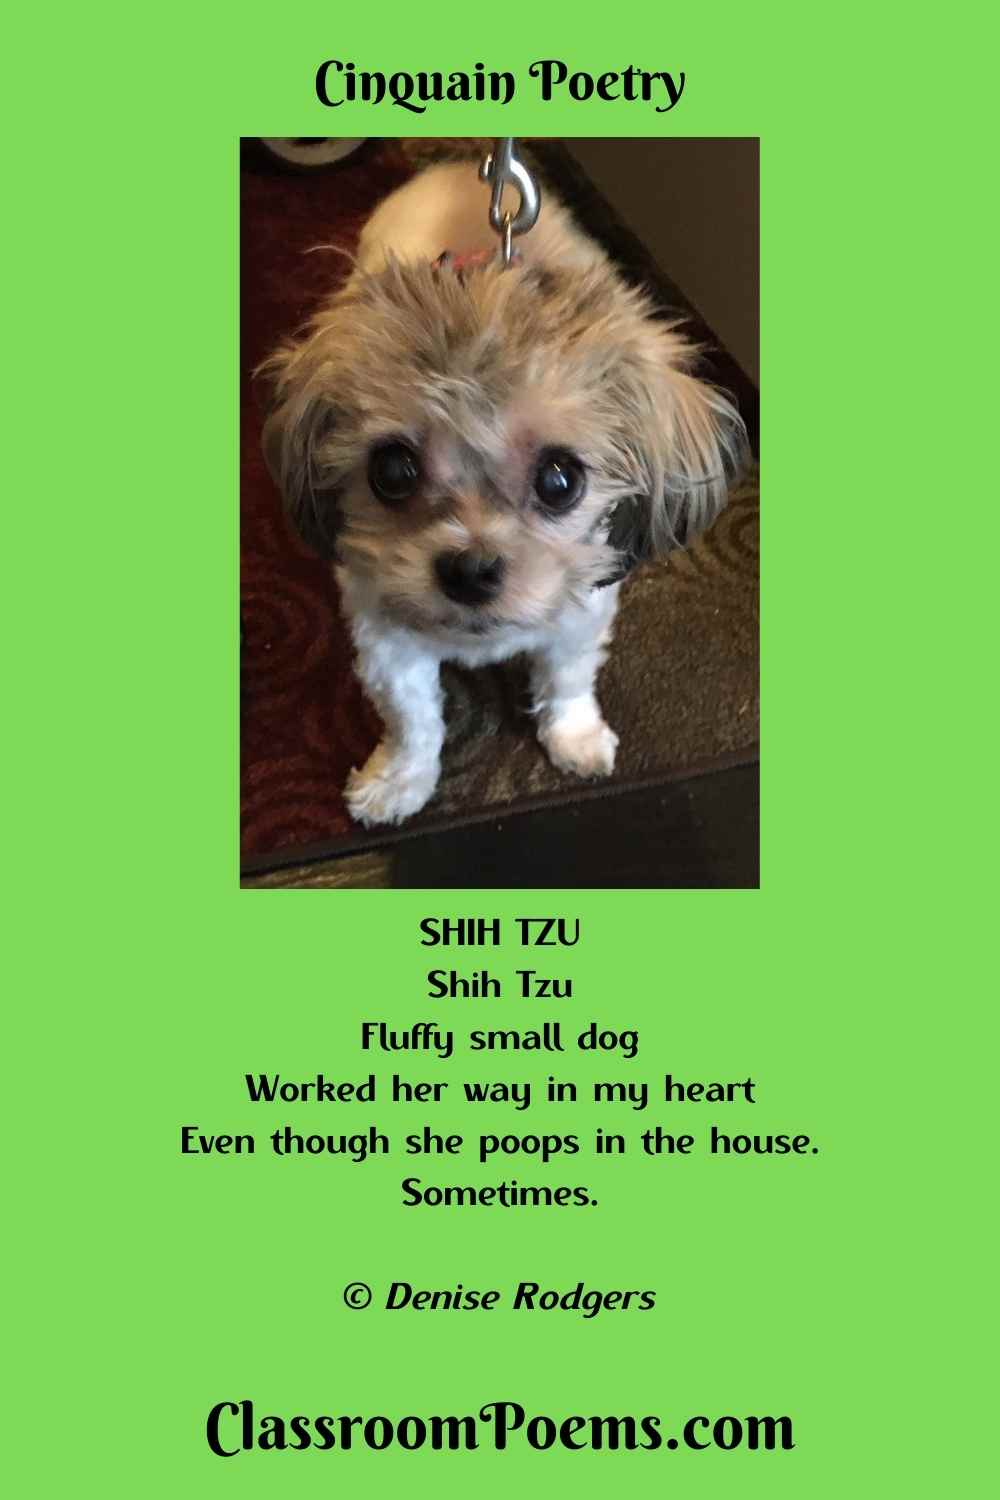 Shih Tzu Cinquain Poem by the Poetry Lady Denise Rodgers on ClassroomPoems.com.